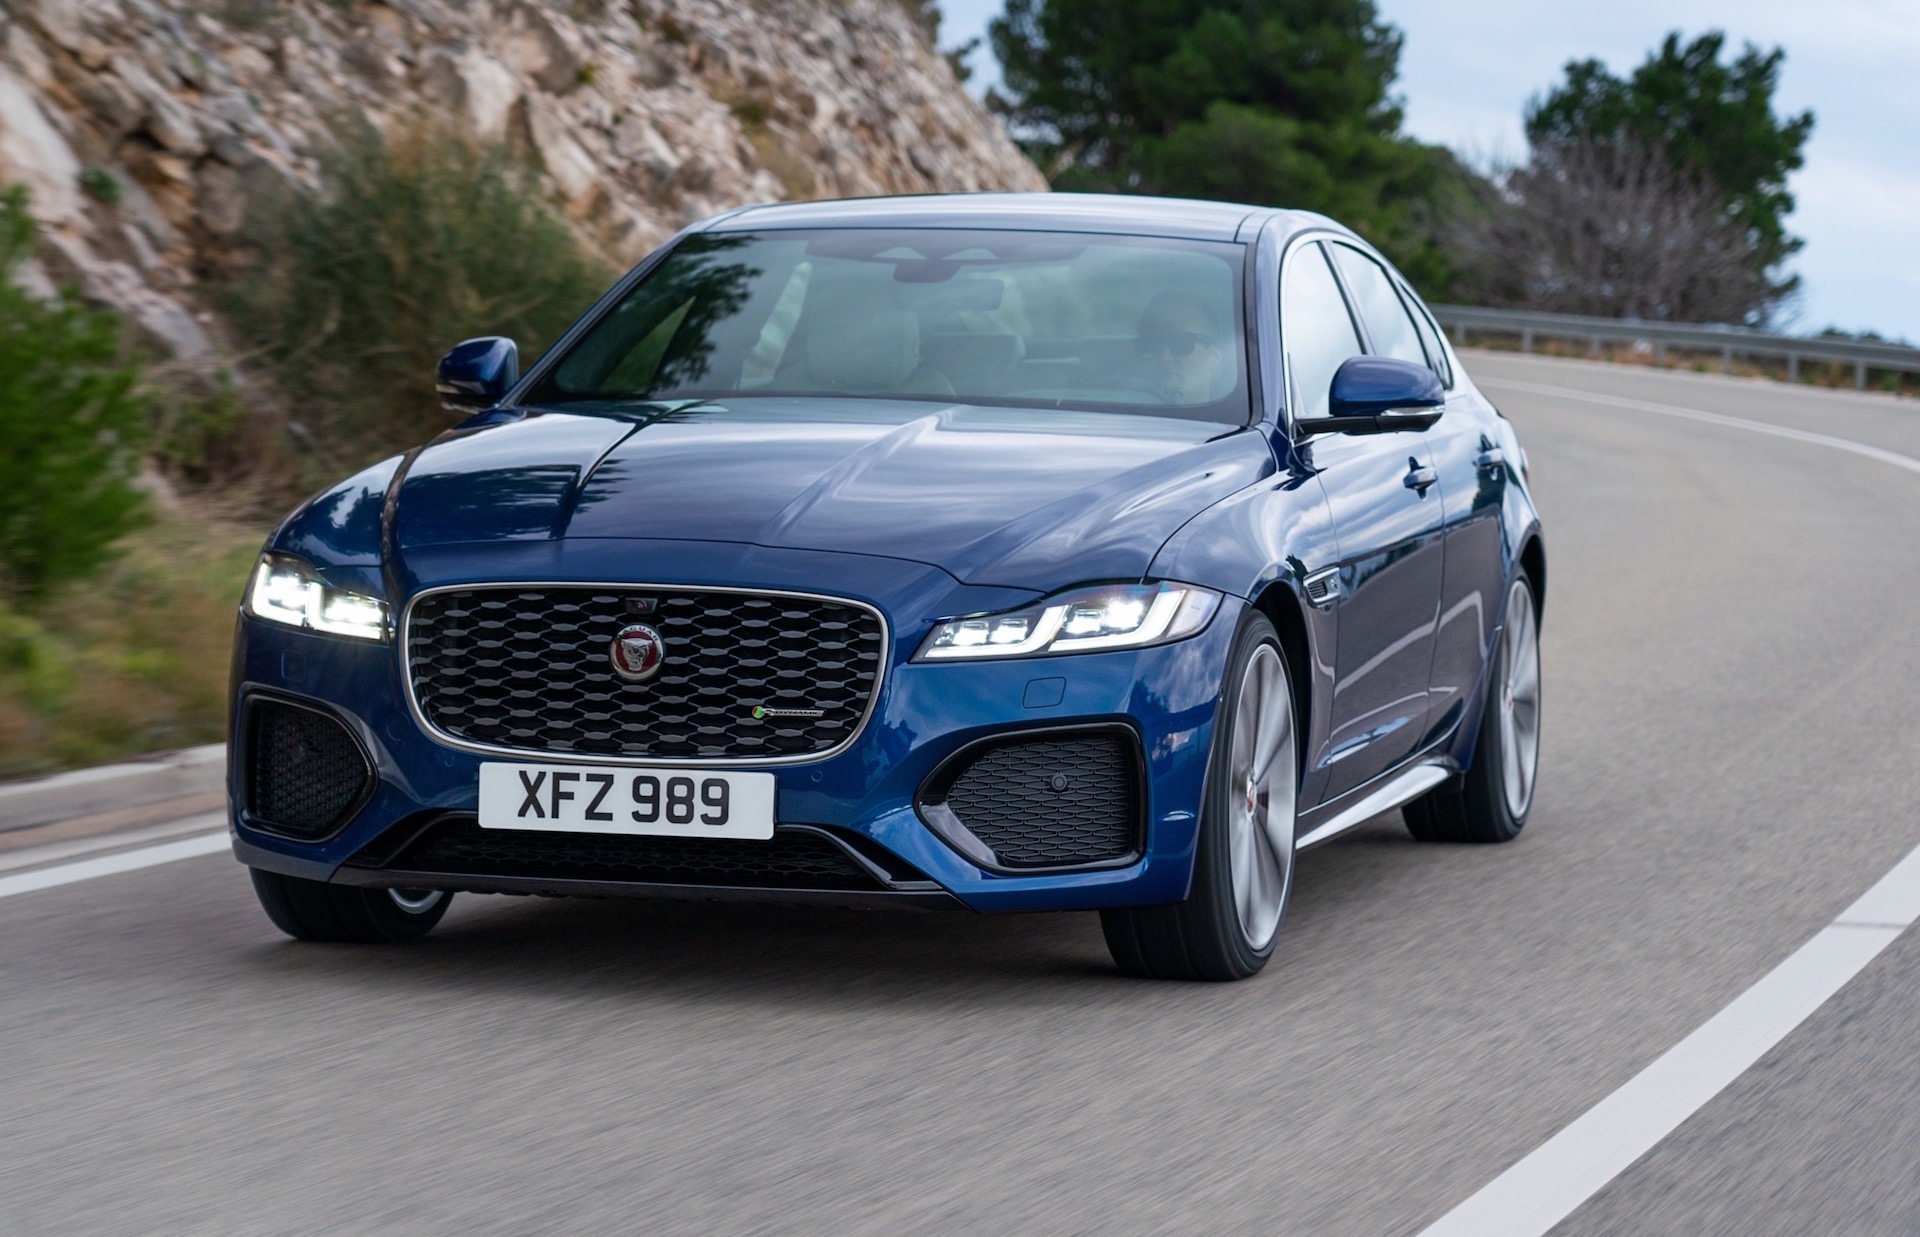 2021 jaguar xf update announced awd p300 confirmed for